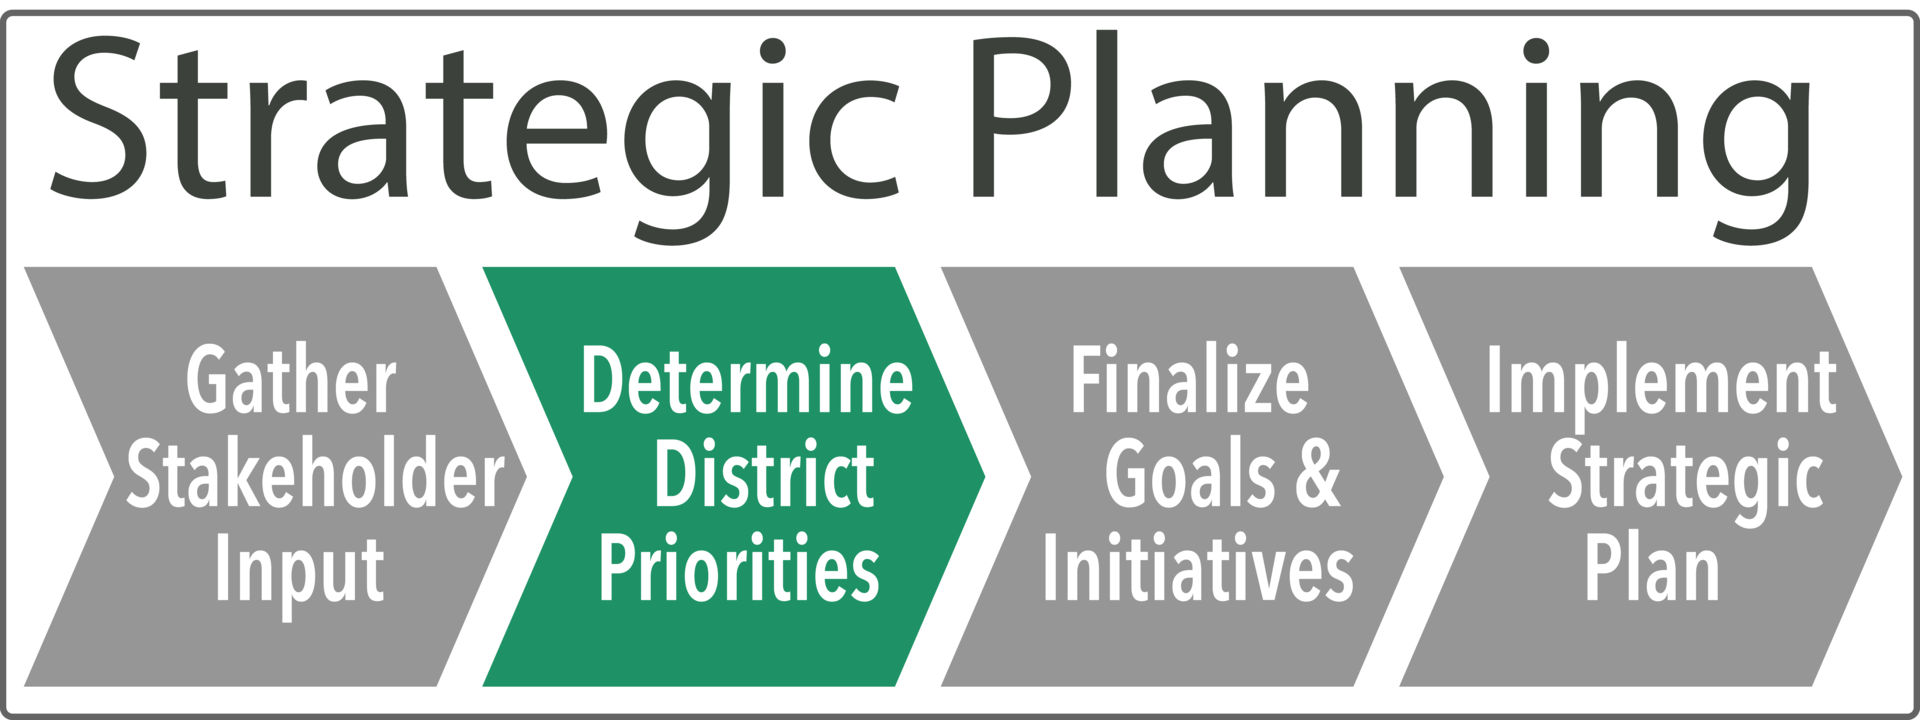 Planning Flowchart with Priorities Highlighted